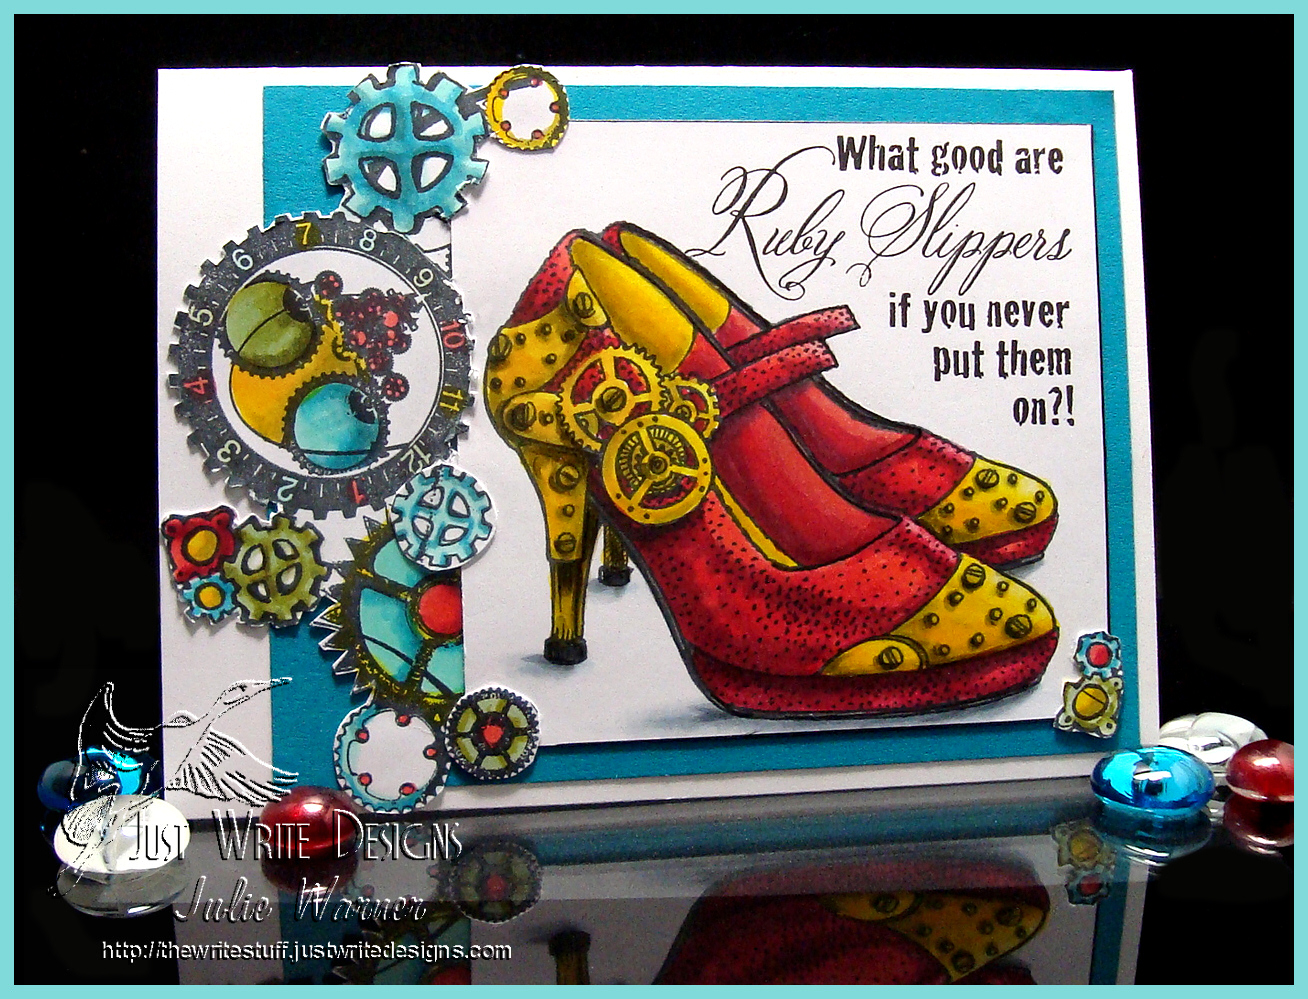 Ruby Slippers 03030